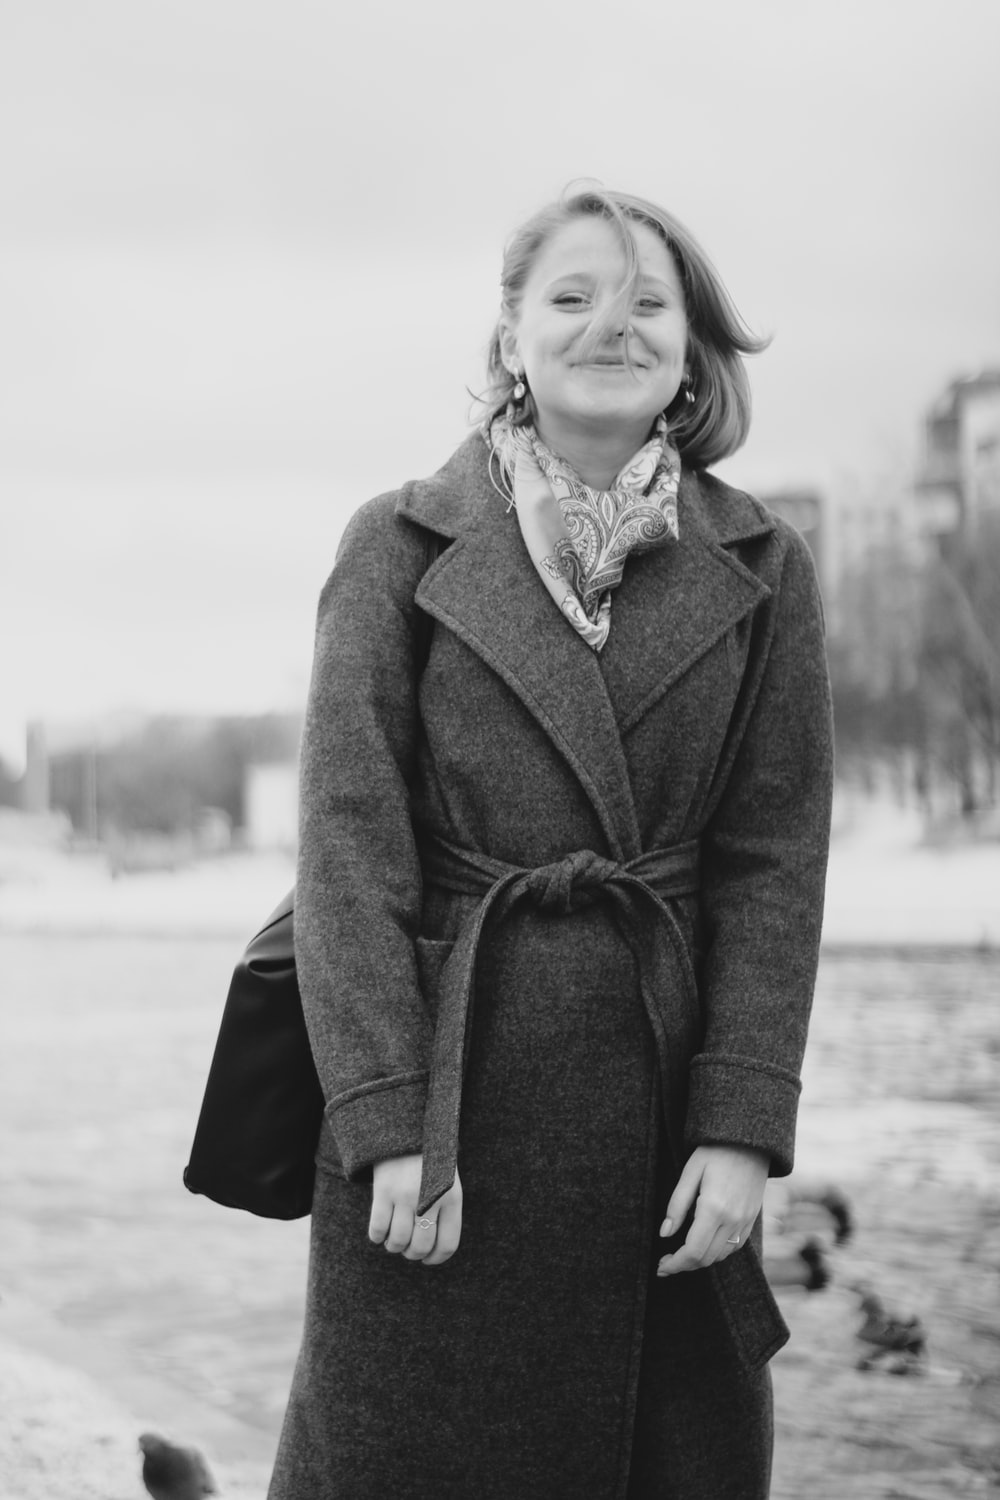 grayscale photo of woman in coat smiling